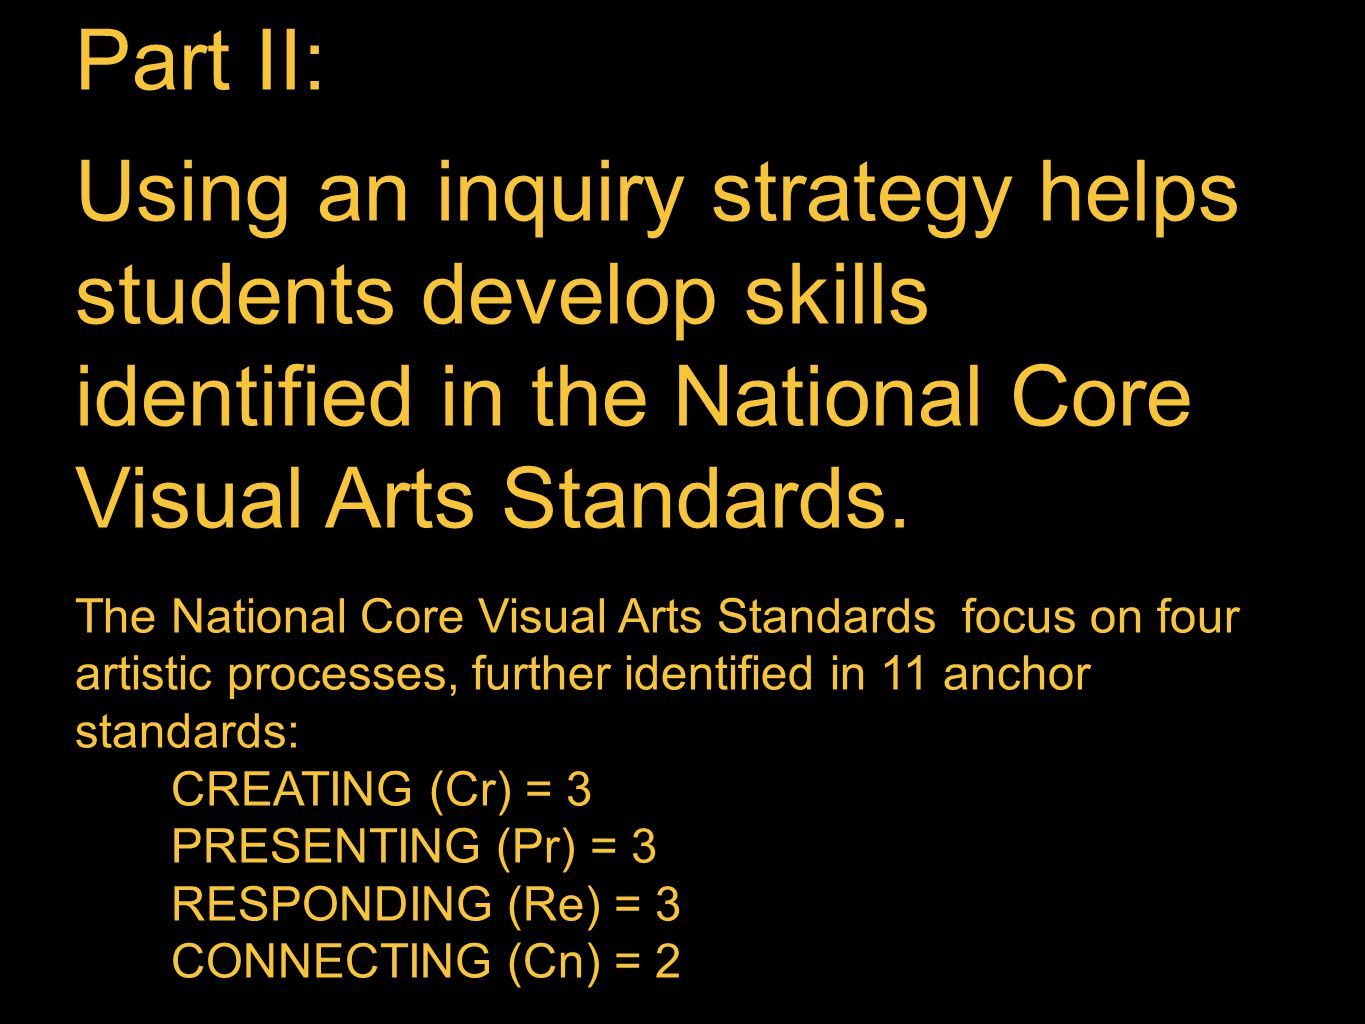 Part II: Using an inquiry strategy helps students develop skills identified in the National Core Visual Arts Standards.